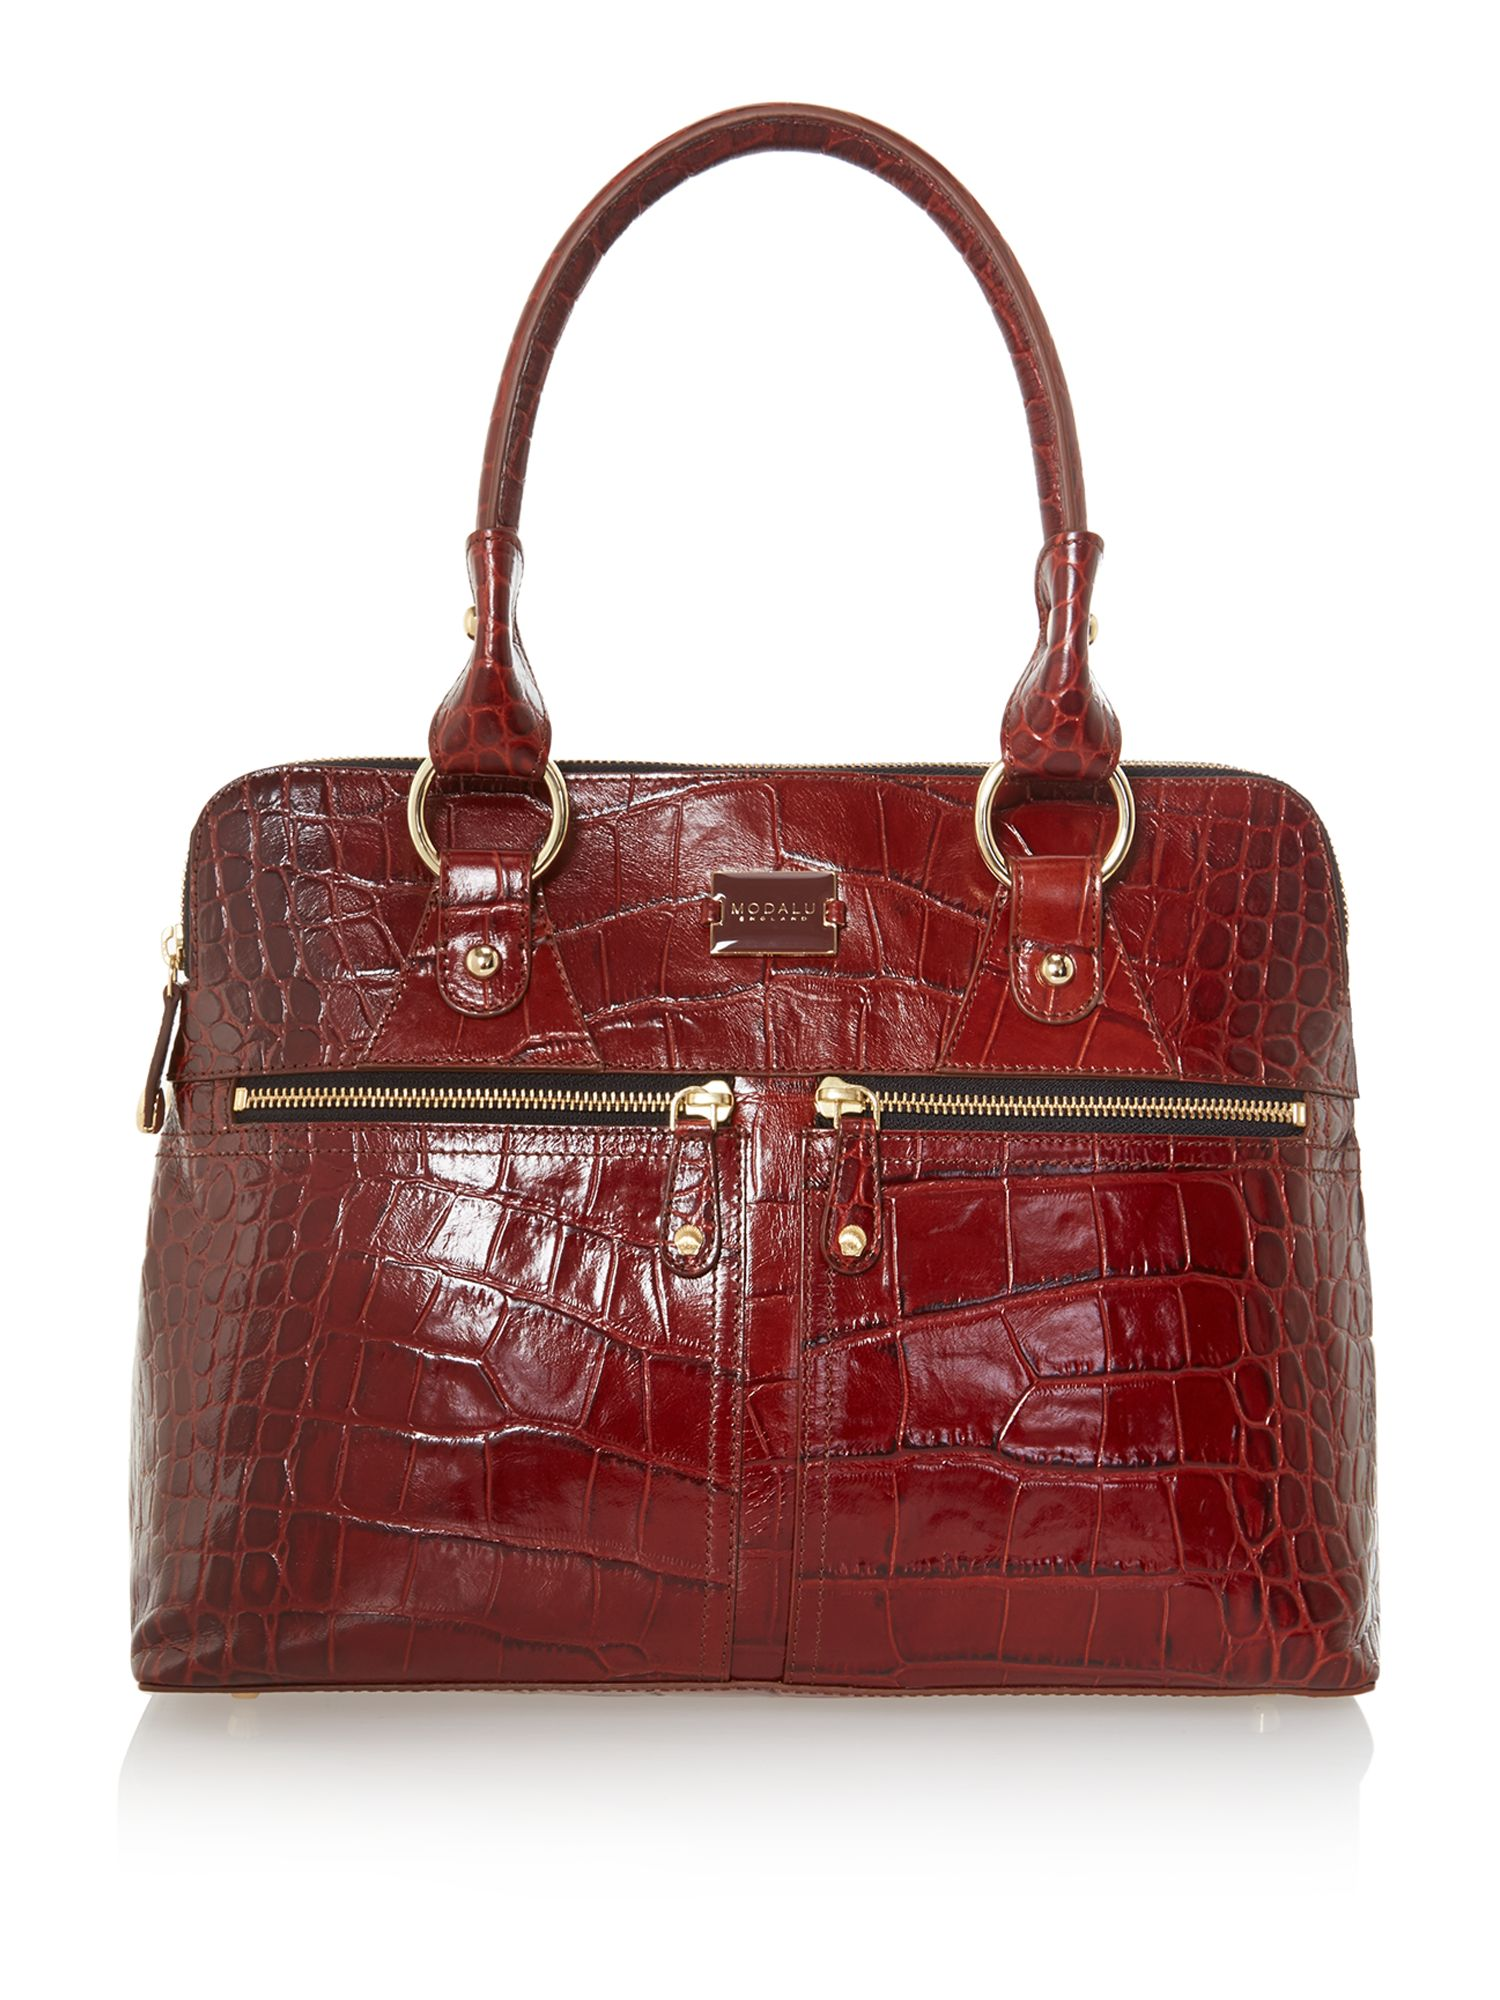 Pippa brown croc tote bag